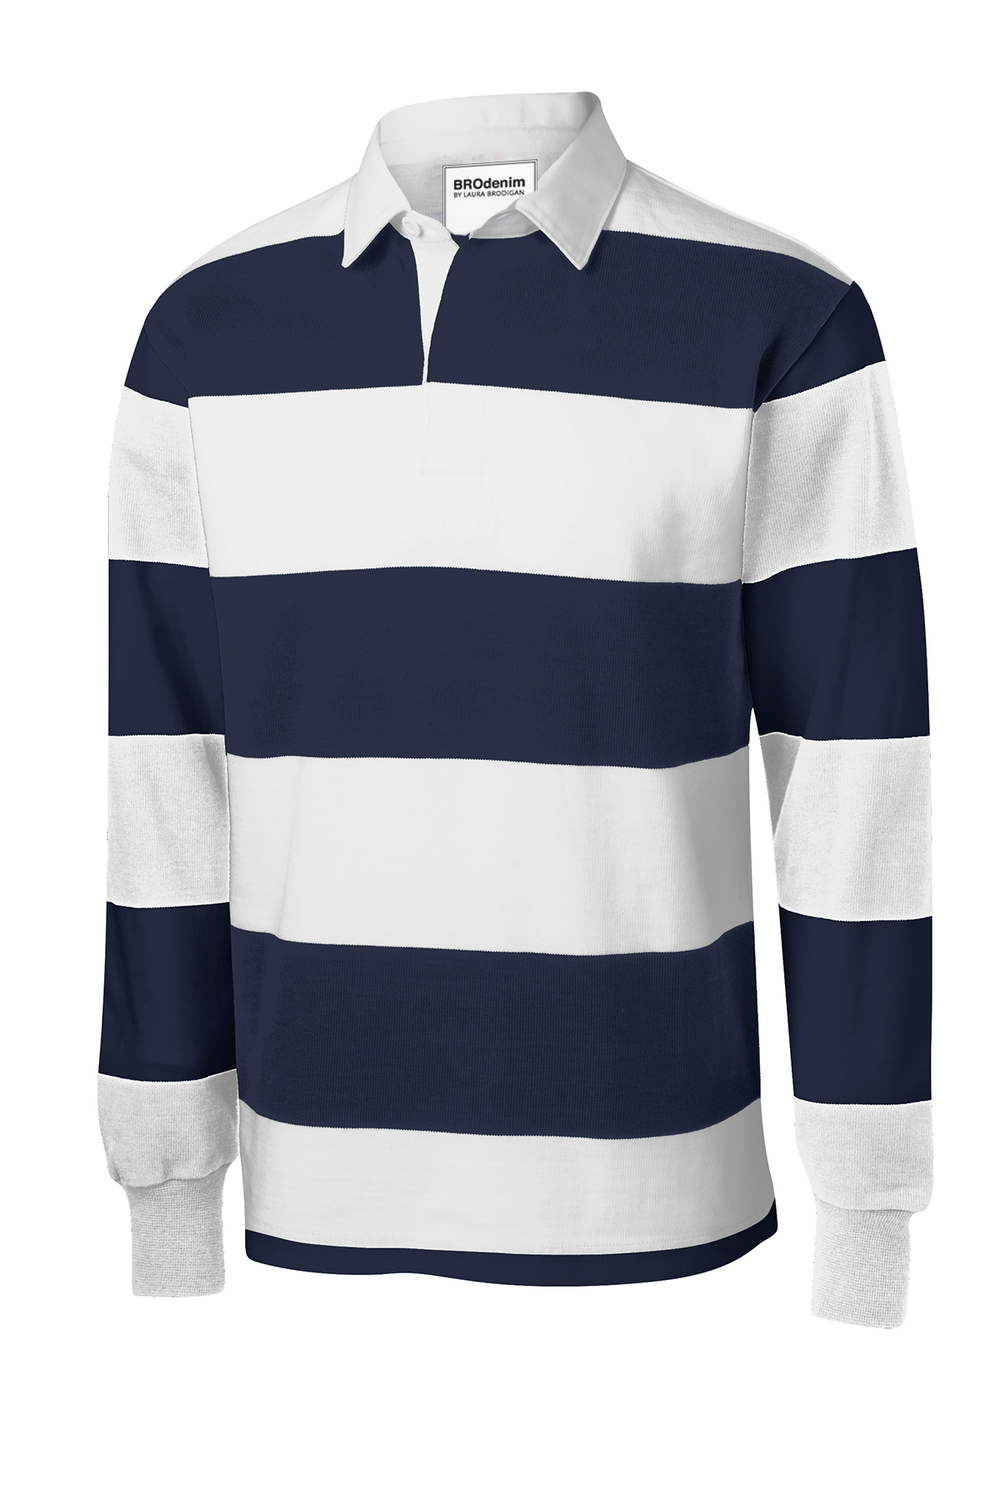 Vintage Rugby  - ADULT [XS-4XL}A lighter weight and authentic rugby polo in popular team colors6.5-ounce, 100% ring spun cotton jerseyTag-free labelEngineered with yarn-dyed stripesWoven twill collarTwill-taped neck2-button twill-reinforced placket with rubber buttons1x1 rib knit cuffs